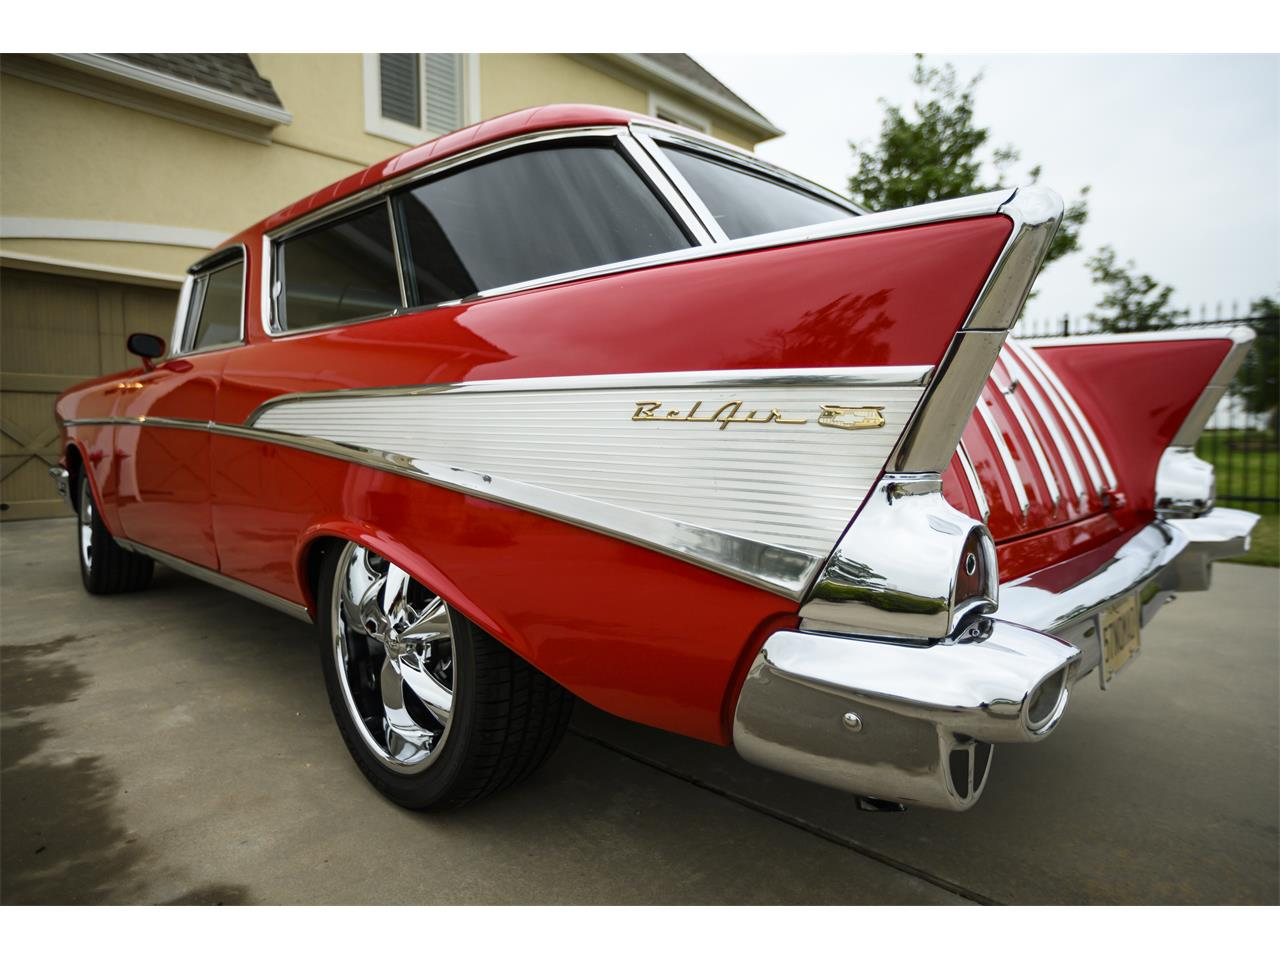 Large Picture of '57 Chevrolet Bel Air Nomad located in Lawton Oklahoma Offered by a Private Seller - PZTB